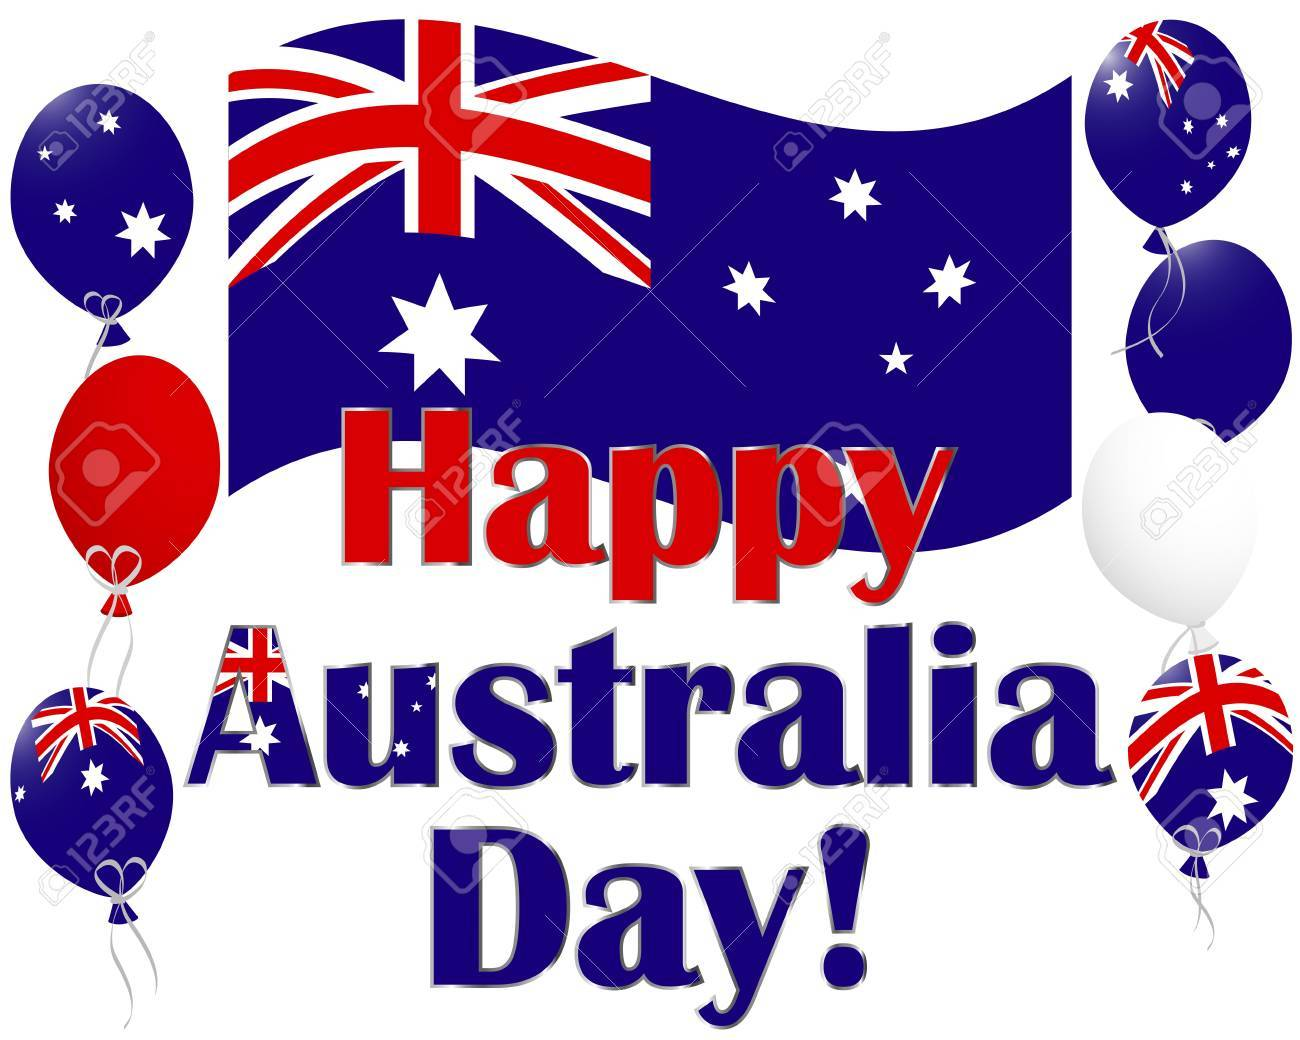 Australia Day background with flags and Australia flag balloons.